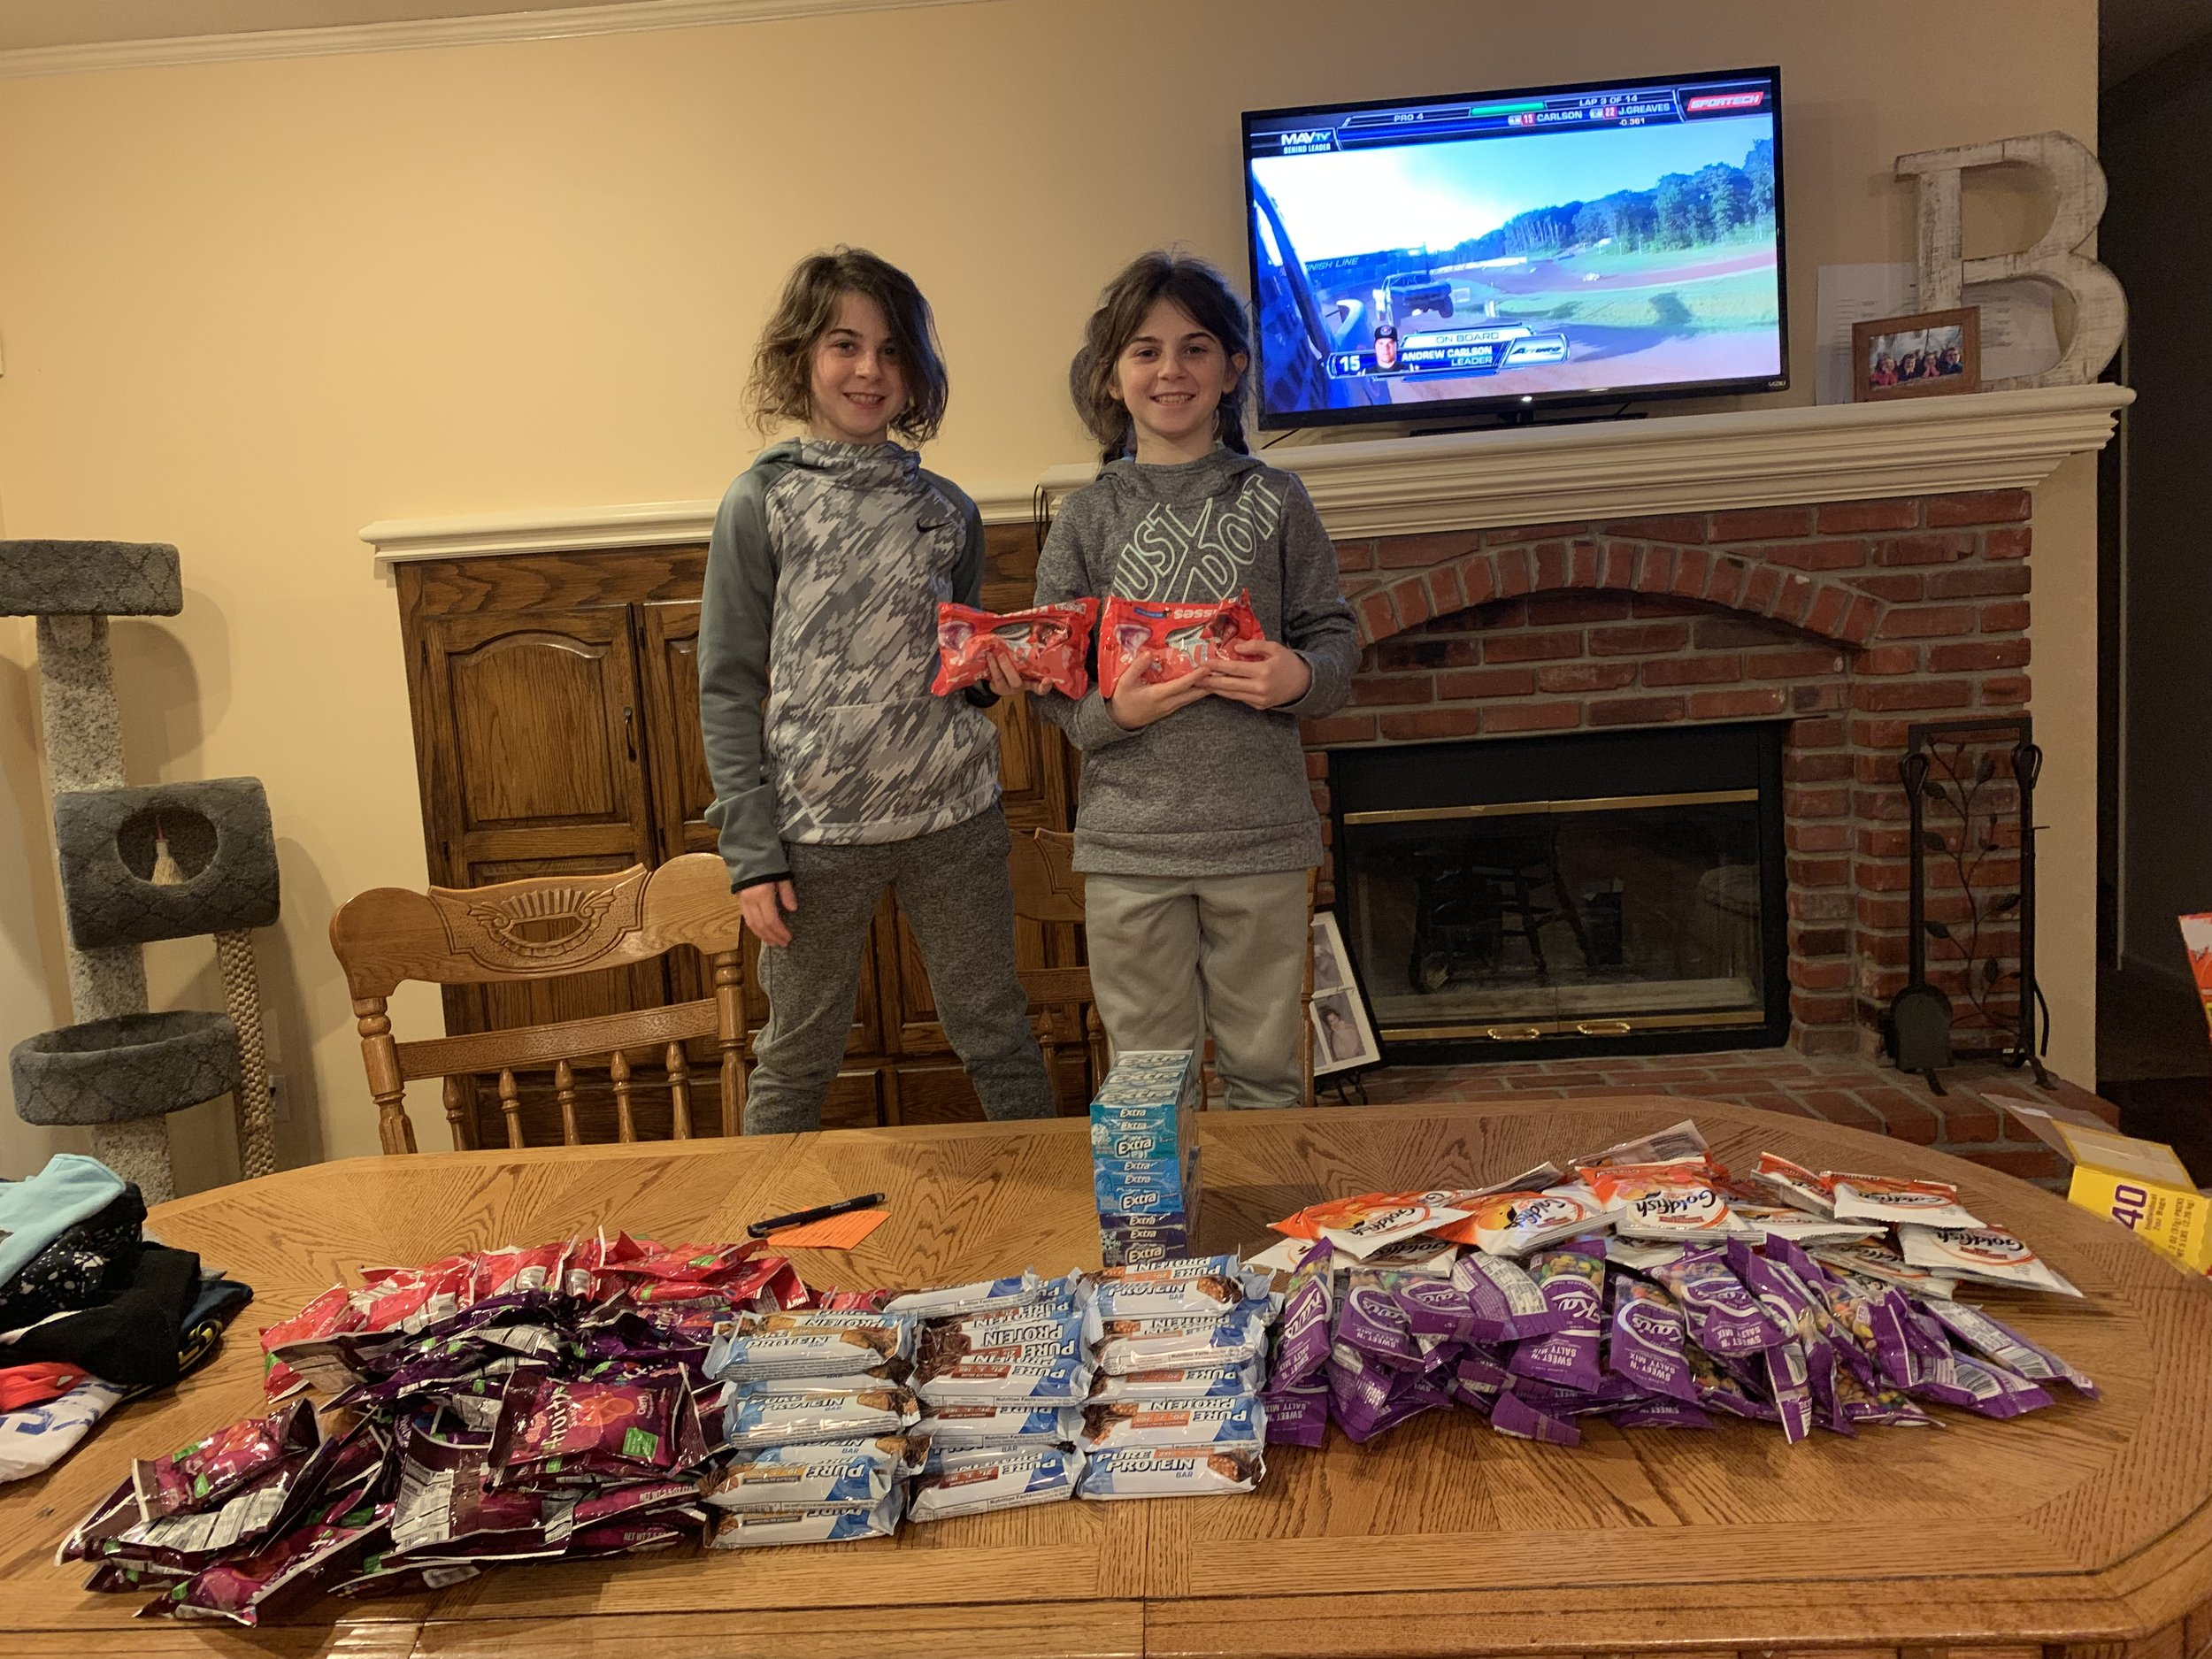 Sandy & Lilly getting Valentines Day bags ready for their coaches. It's so much fun to give, isn't it? I'm sure your coaches will appreciate them - but mostly that you thought enough of them to show you are thankful for their investment in your lives.